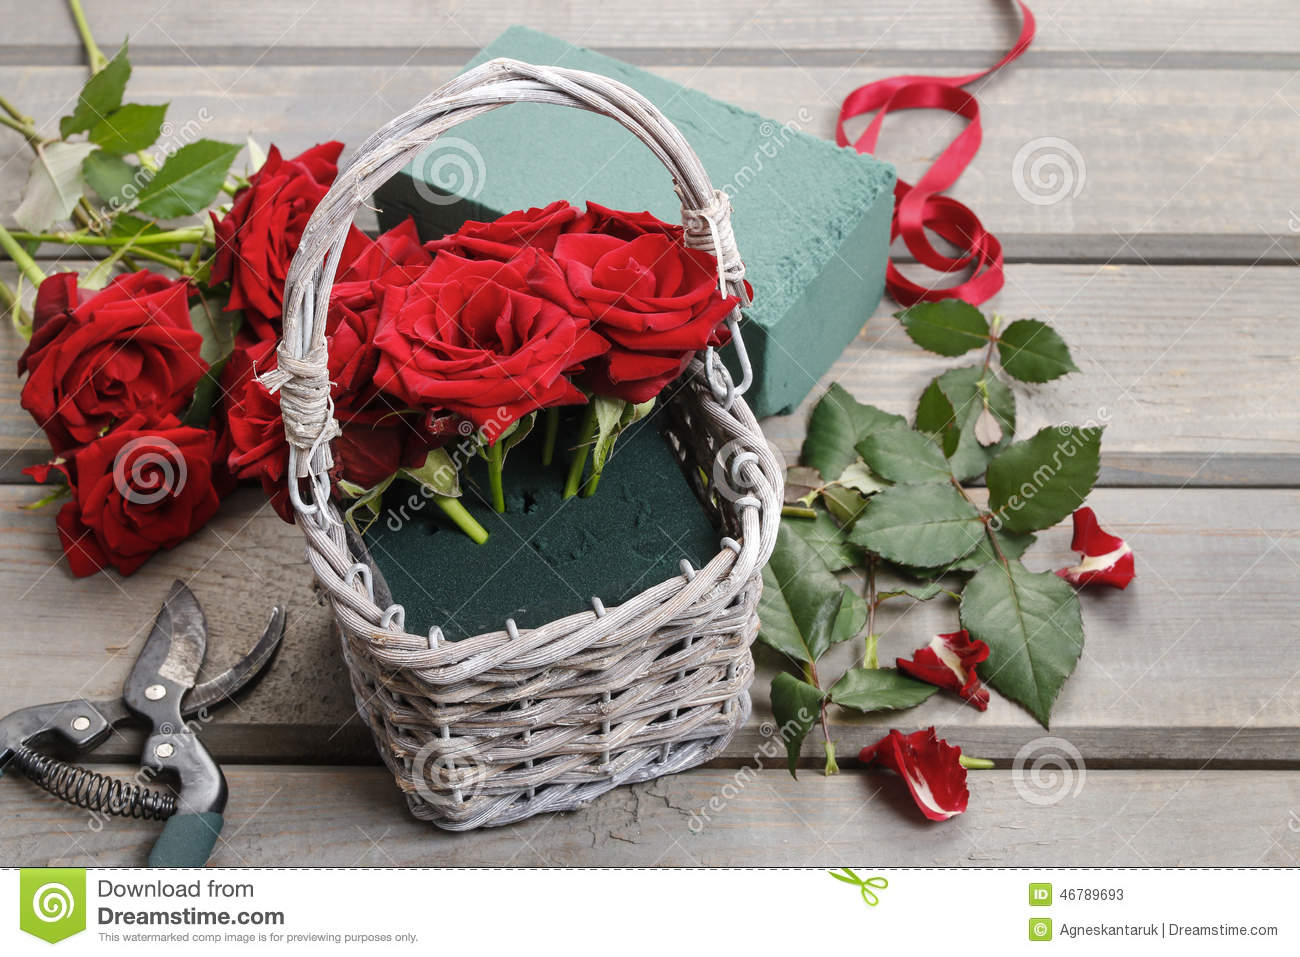 Basket Flower Arrangement Step By Step : How to make bouquet of roses in wicker basket tutorial